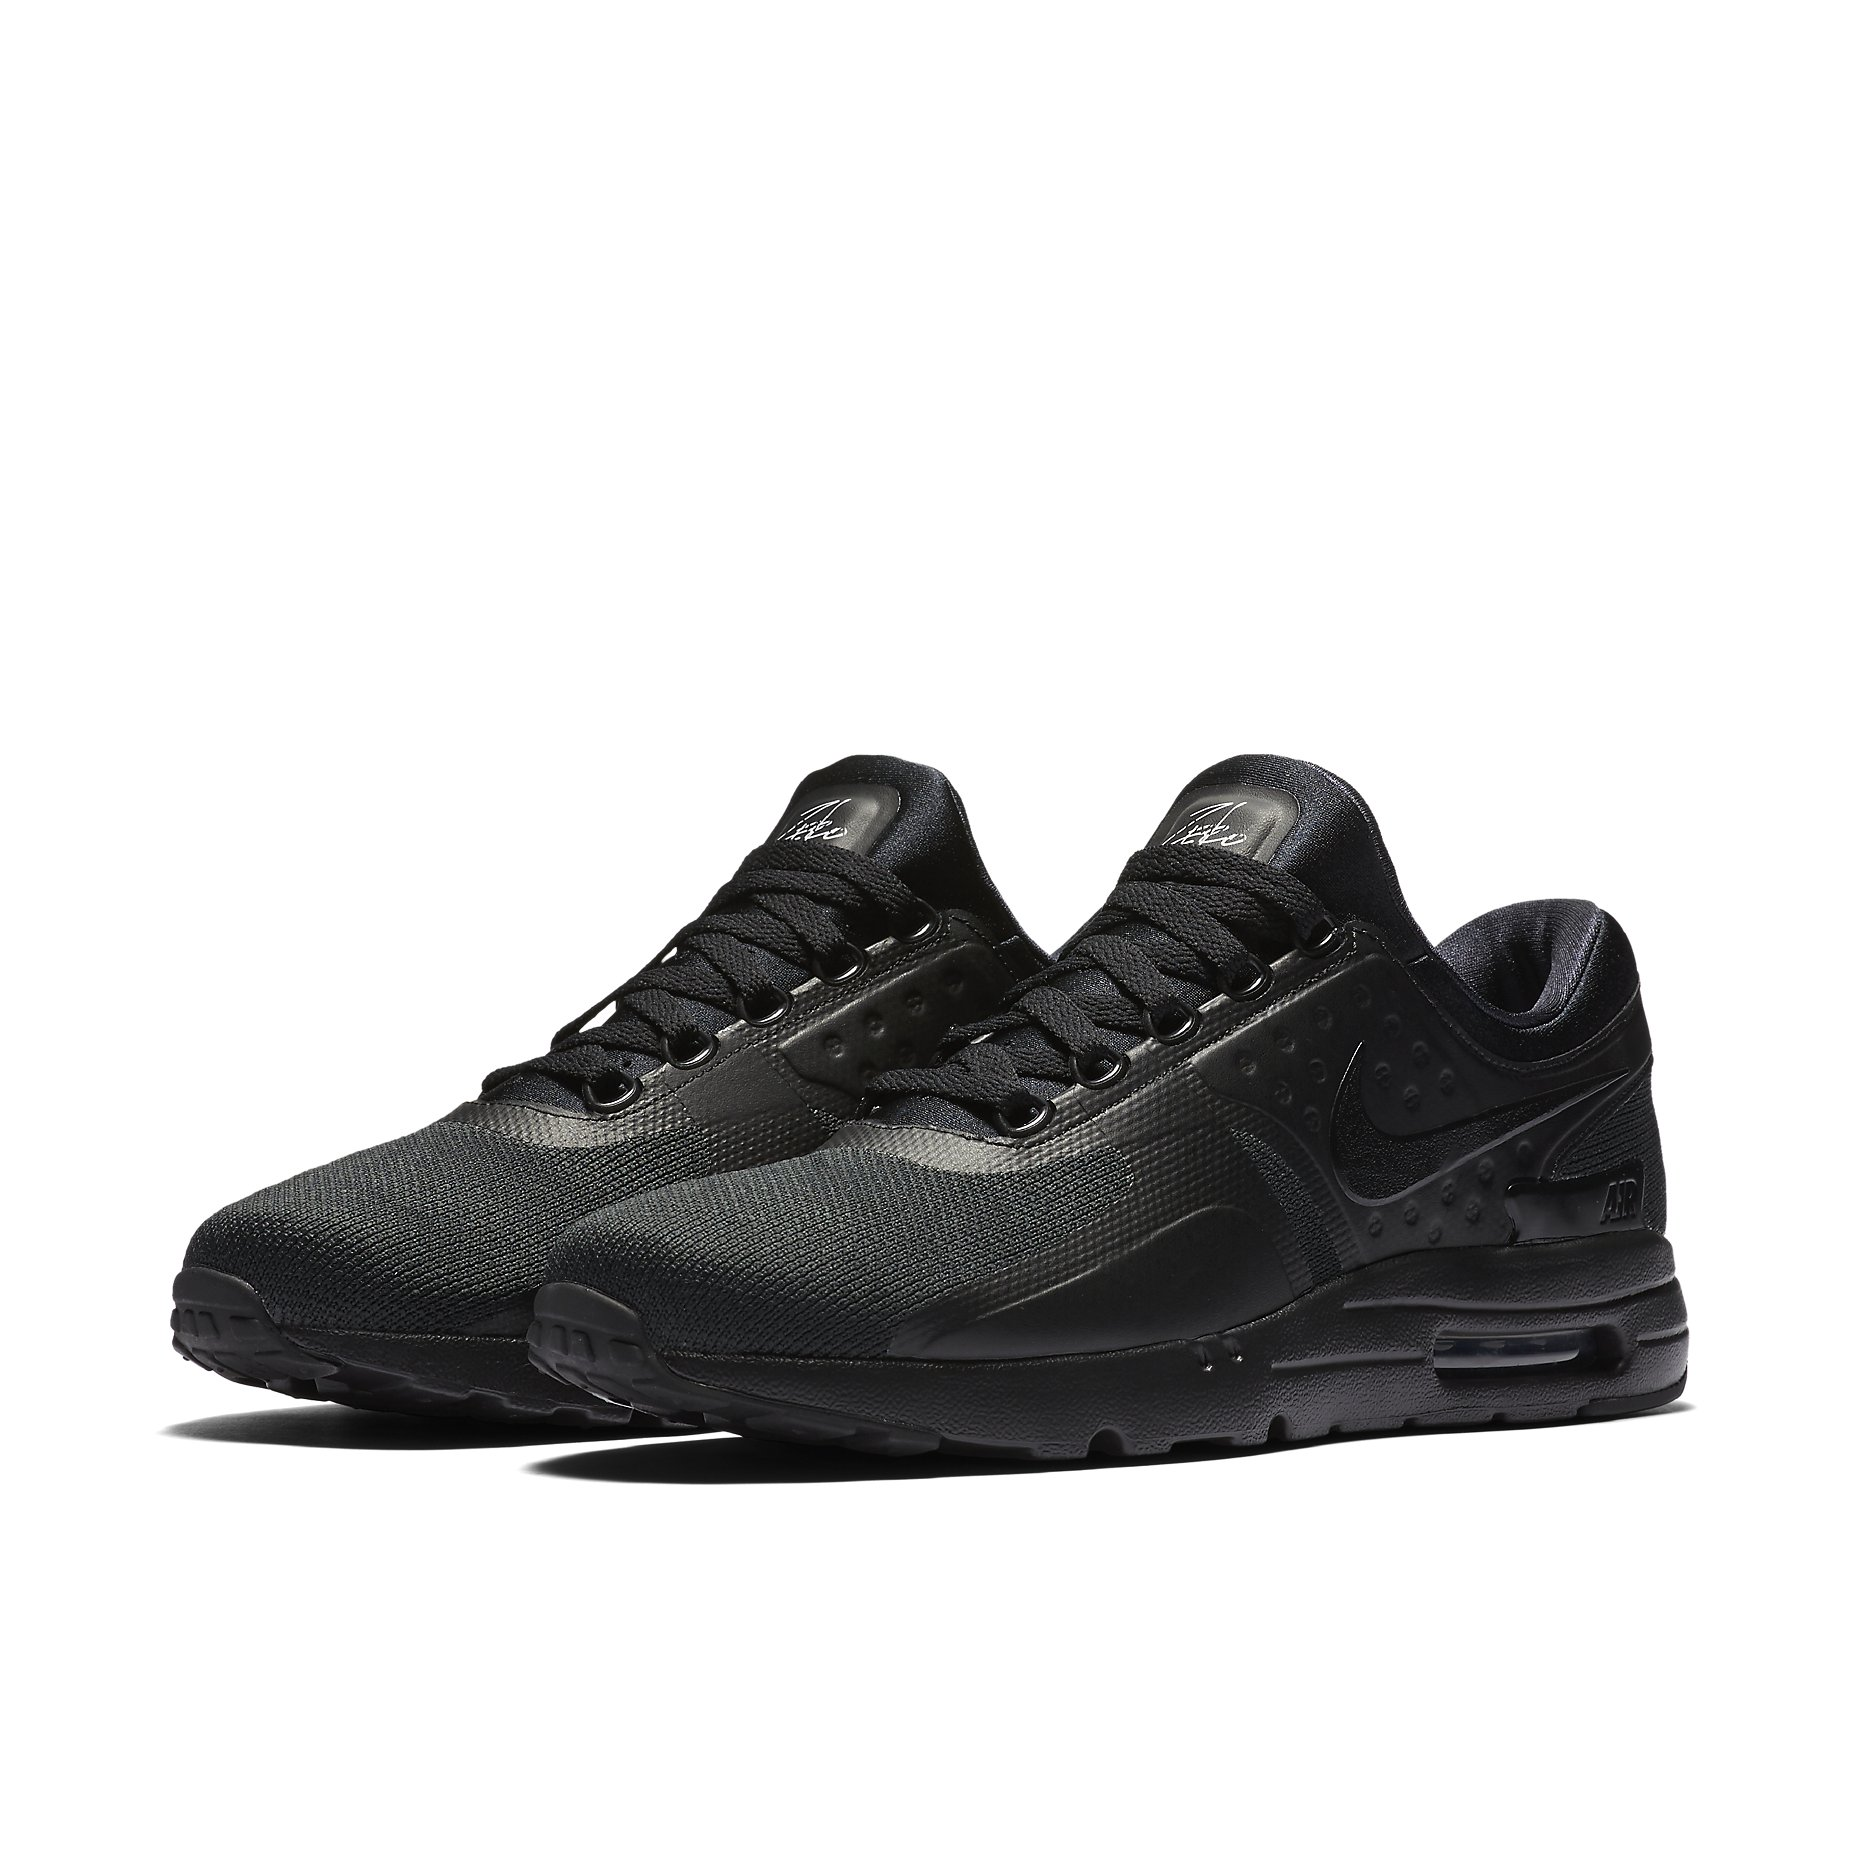 quality design 93b4d 1f7e8 Chaussure Nike Air Max Zero Essential pour Homme   EKINSPORT